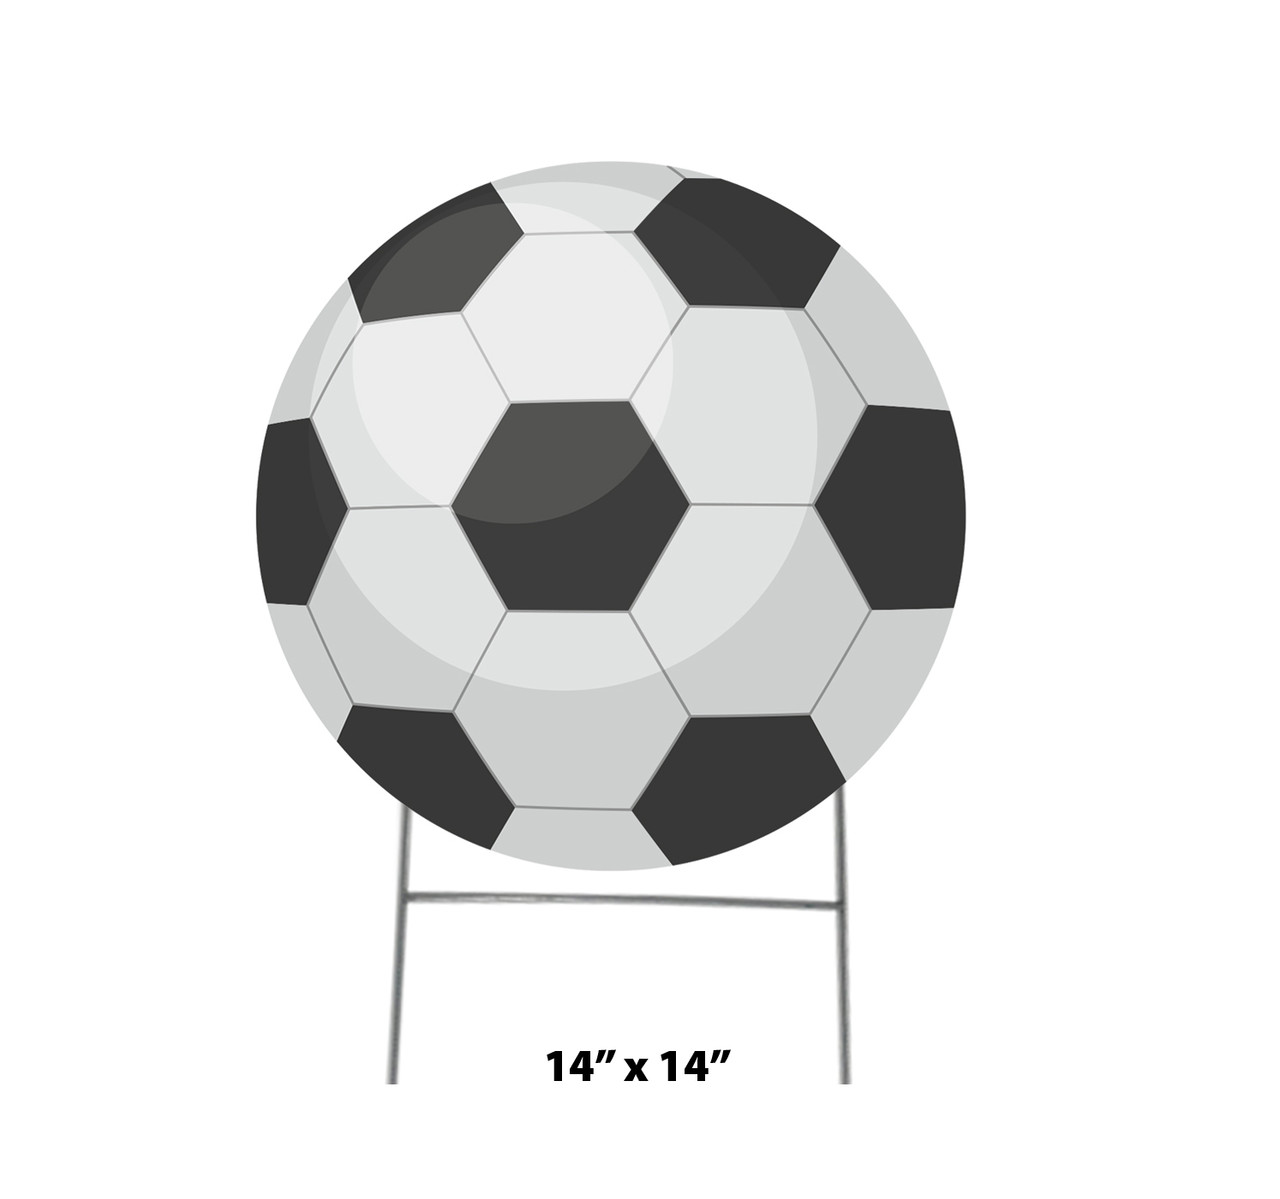 Coroplast outdoor yard sign icon of a soccer ball with dimensions.